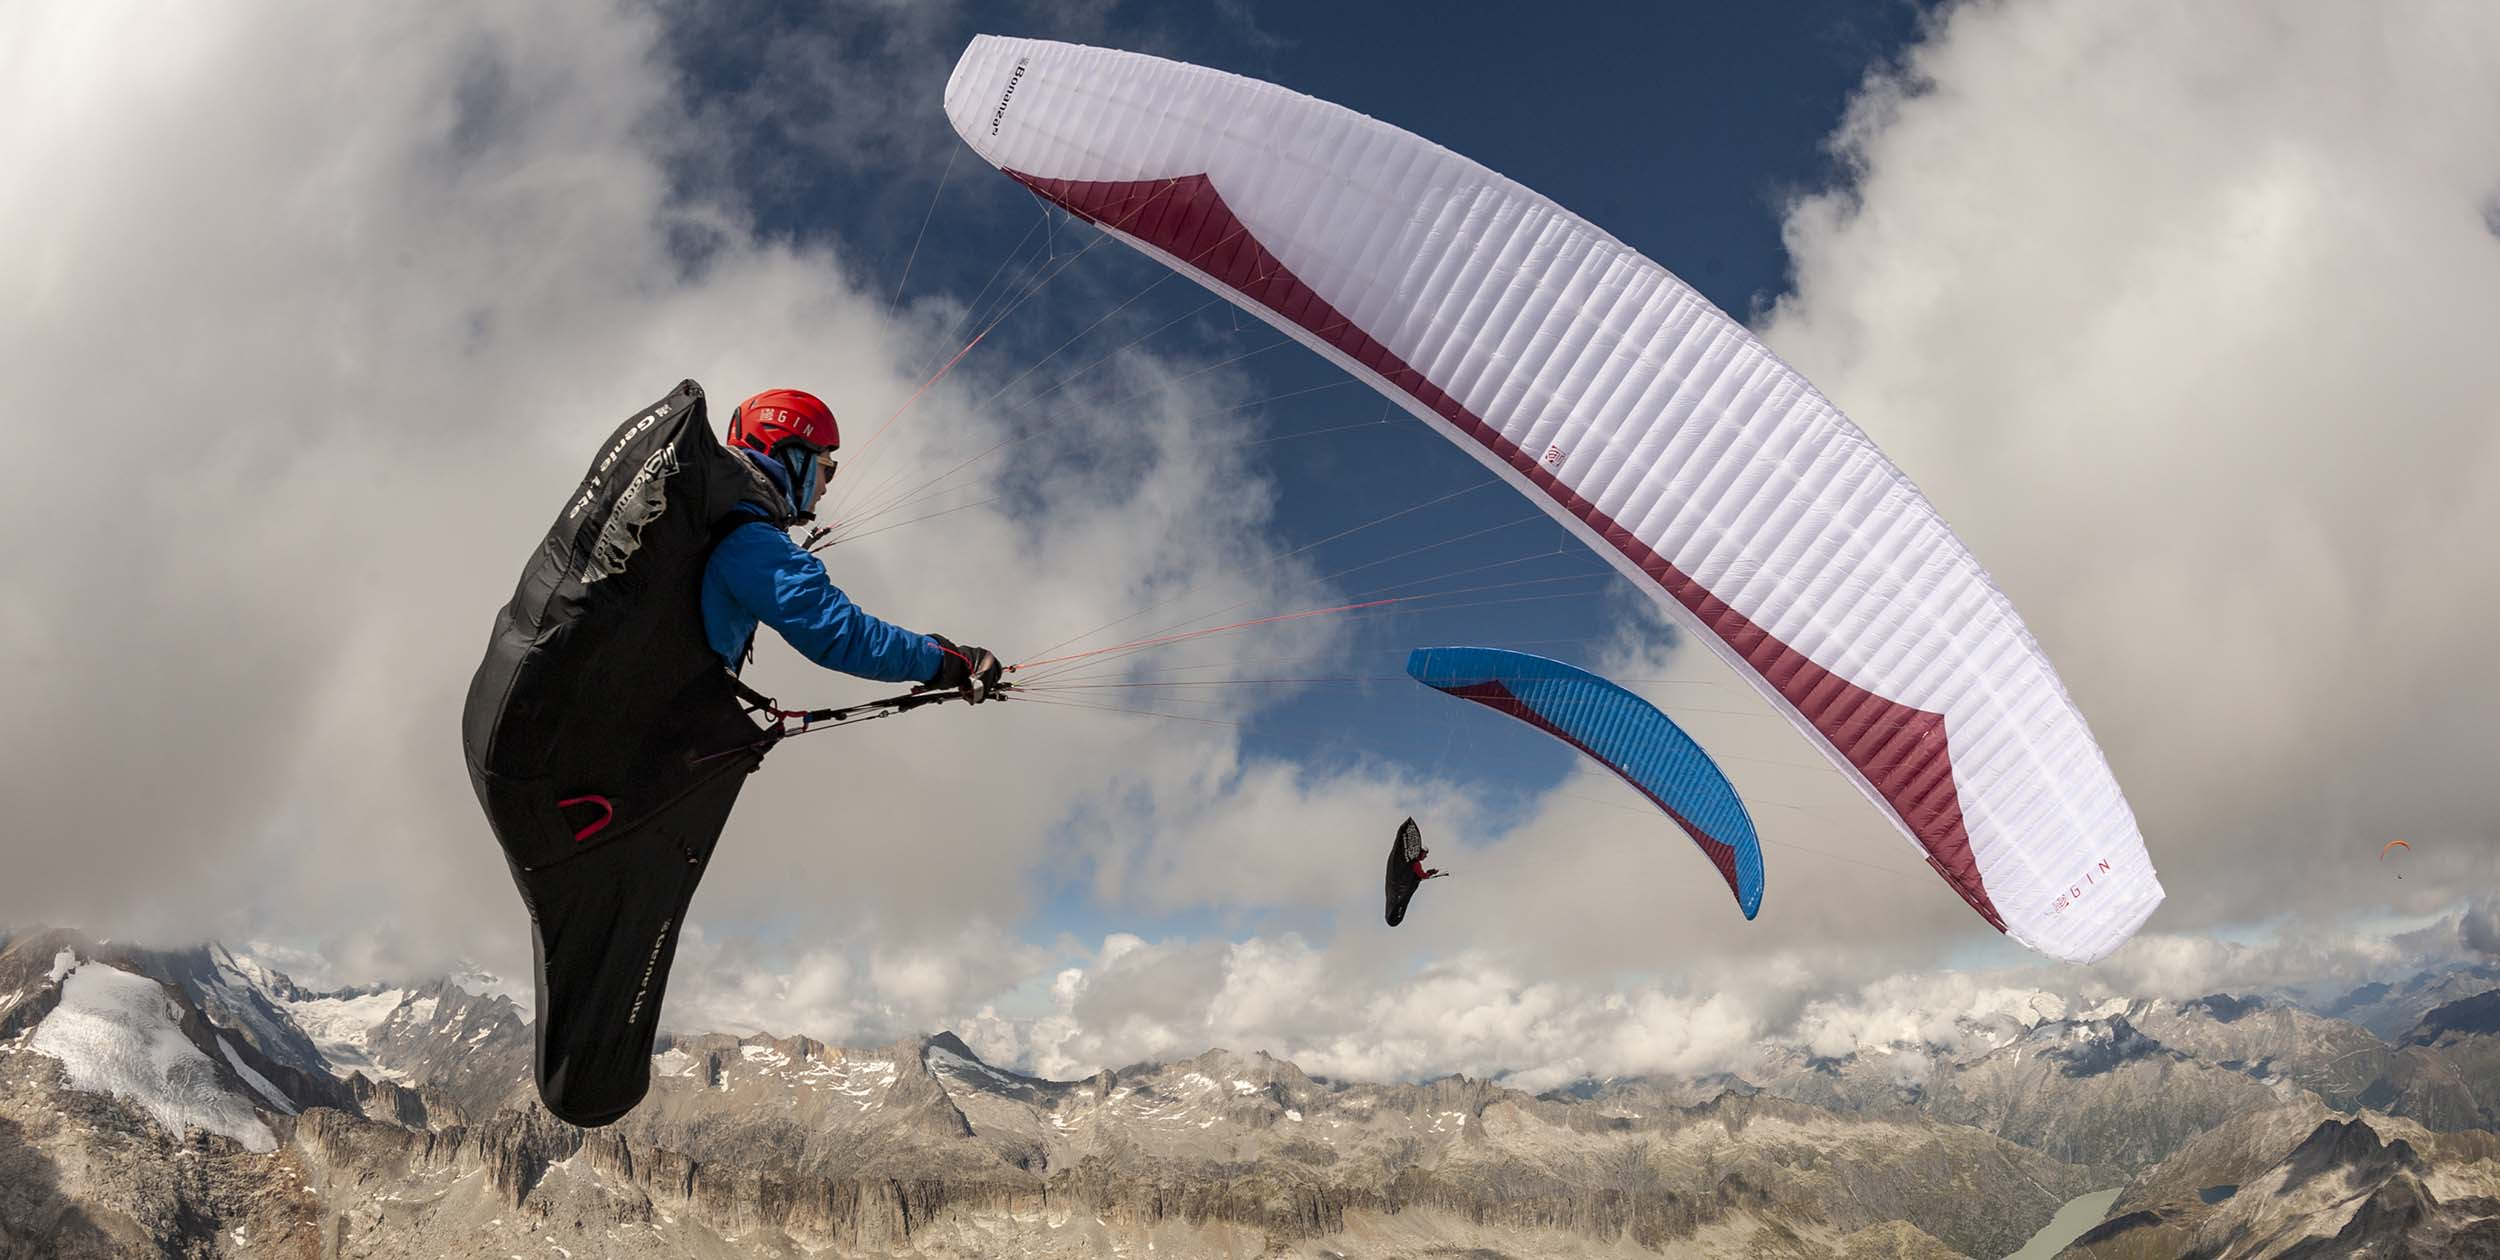 Paragliding-Thermalling-Tips-Jerome-Maupoint